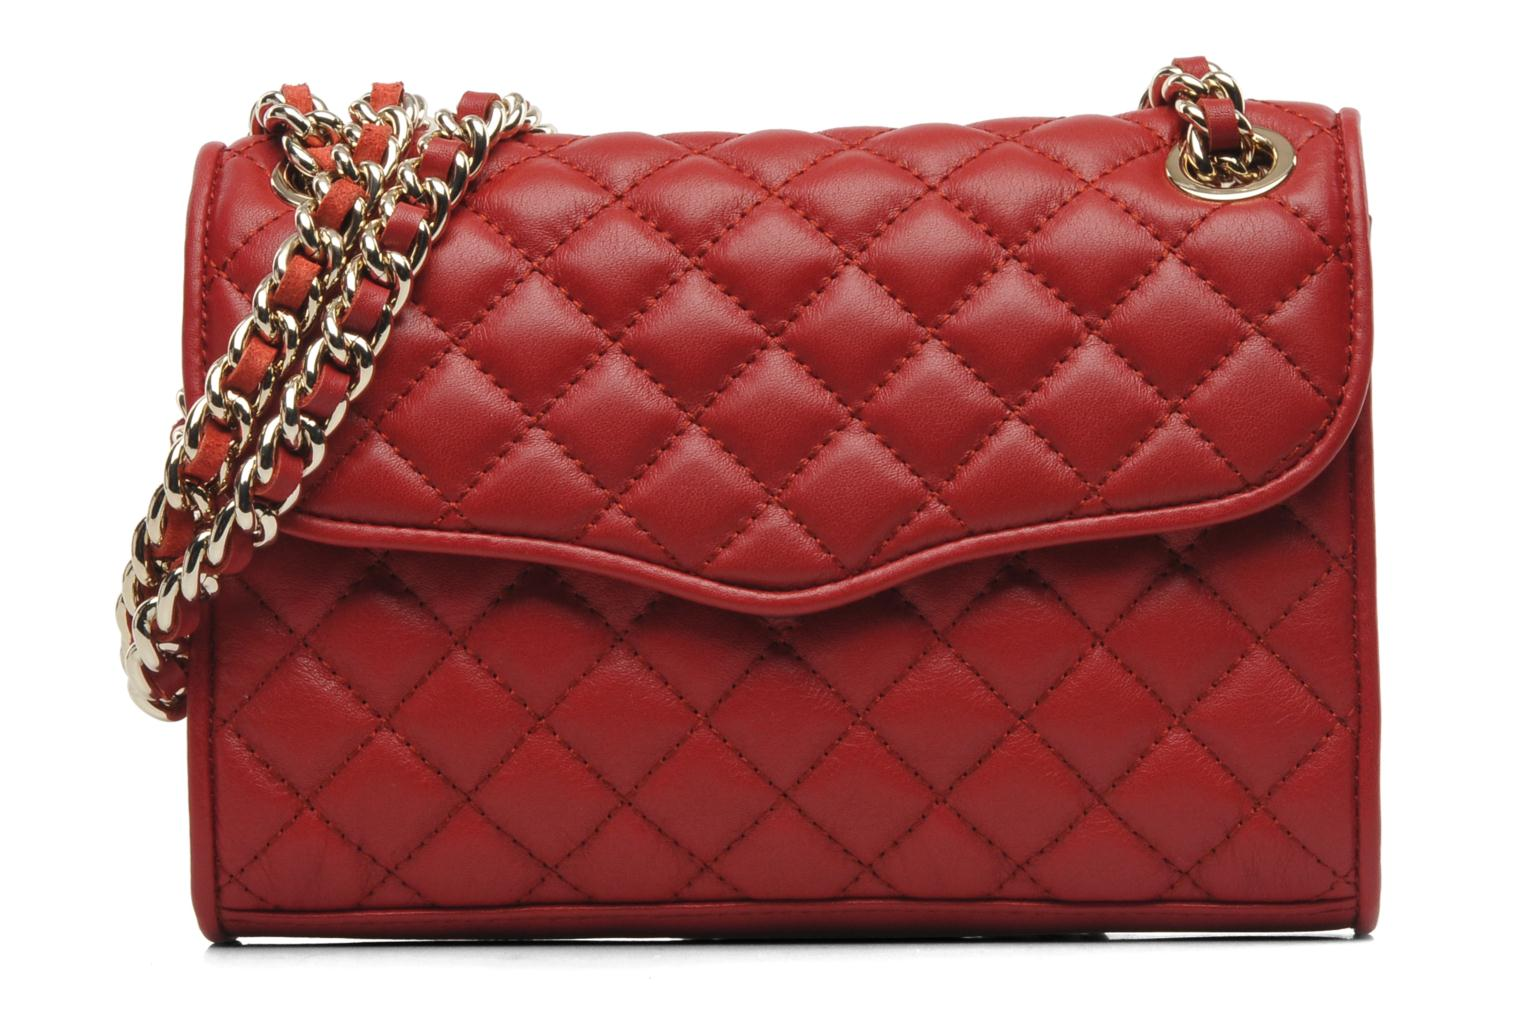 quilt about title mine see colour bag when affair so stop quilted want thing mini it that minkoff won really have rebecca a for i t pop the purses one thinking s of classic until